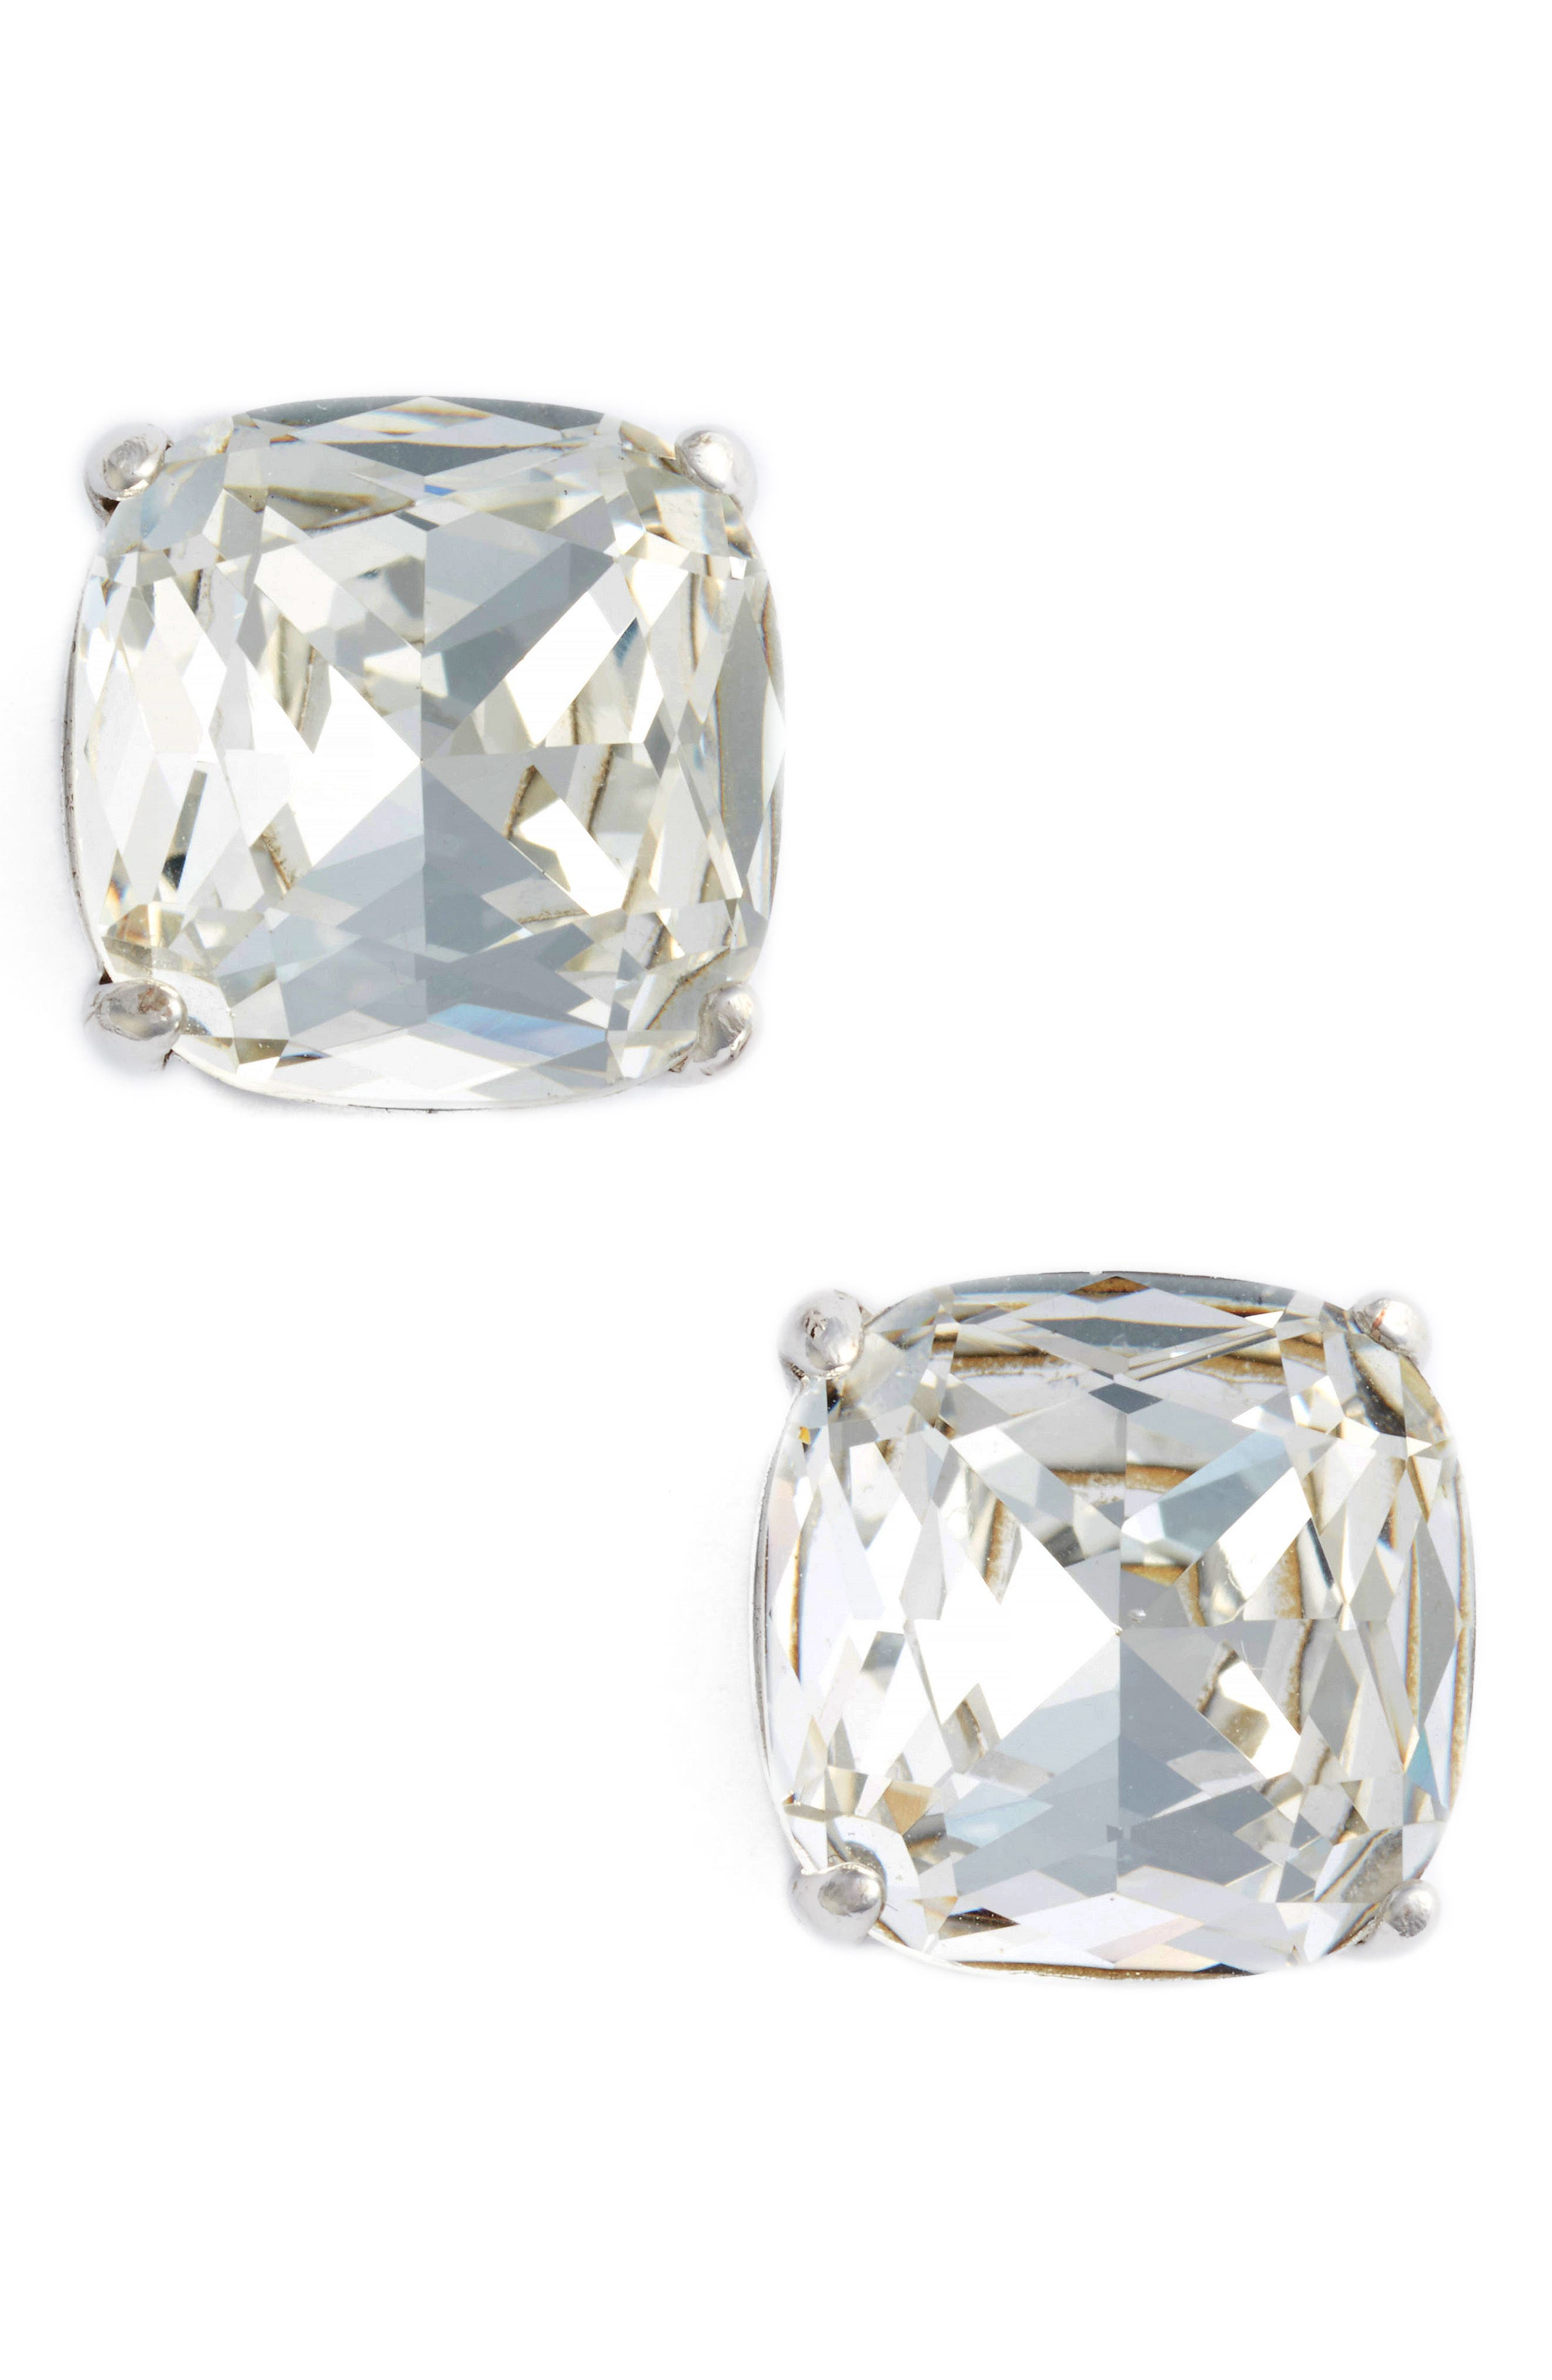 KATE SPADE NEW YORK, small stud earrings, Main thumbnail 1, color, CLEAR CRYSTAL/ SILVER